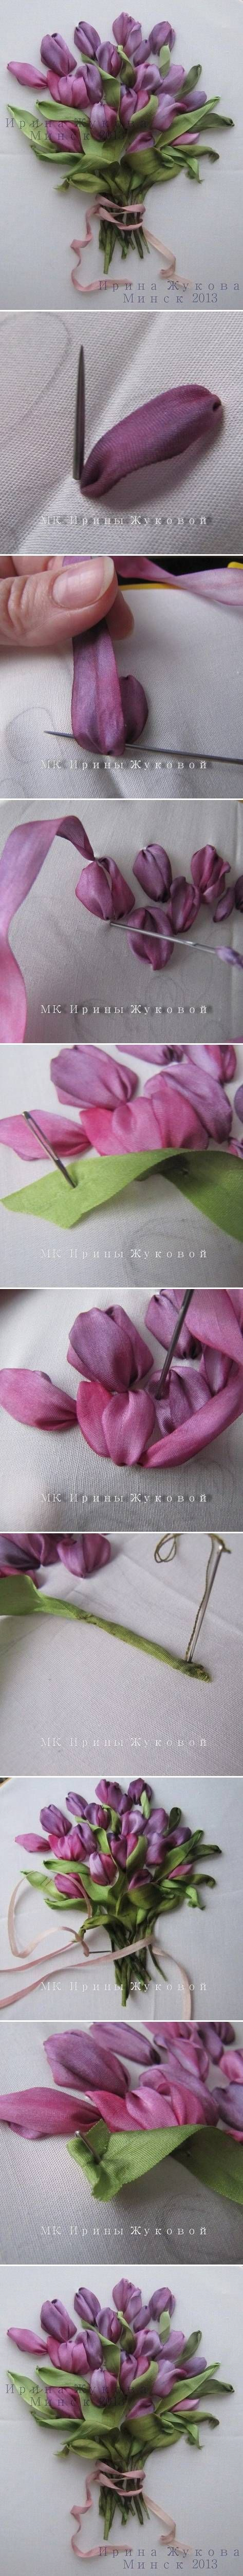 DIY Embroidery Ribbon Flower. This video tutorial is all there is.